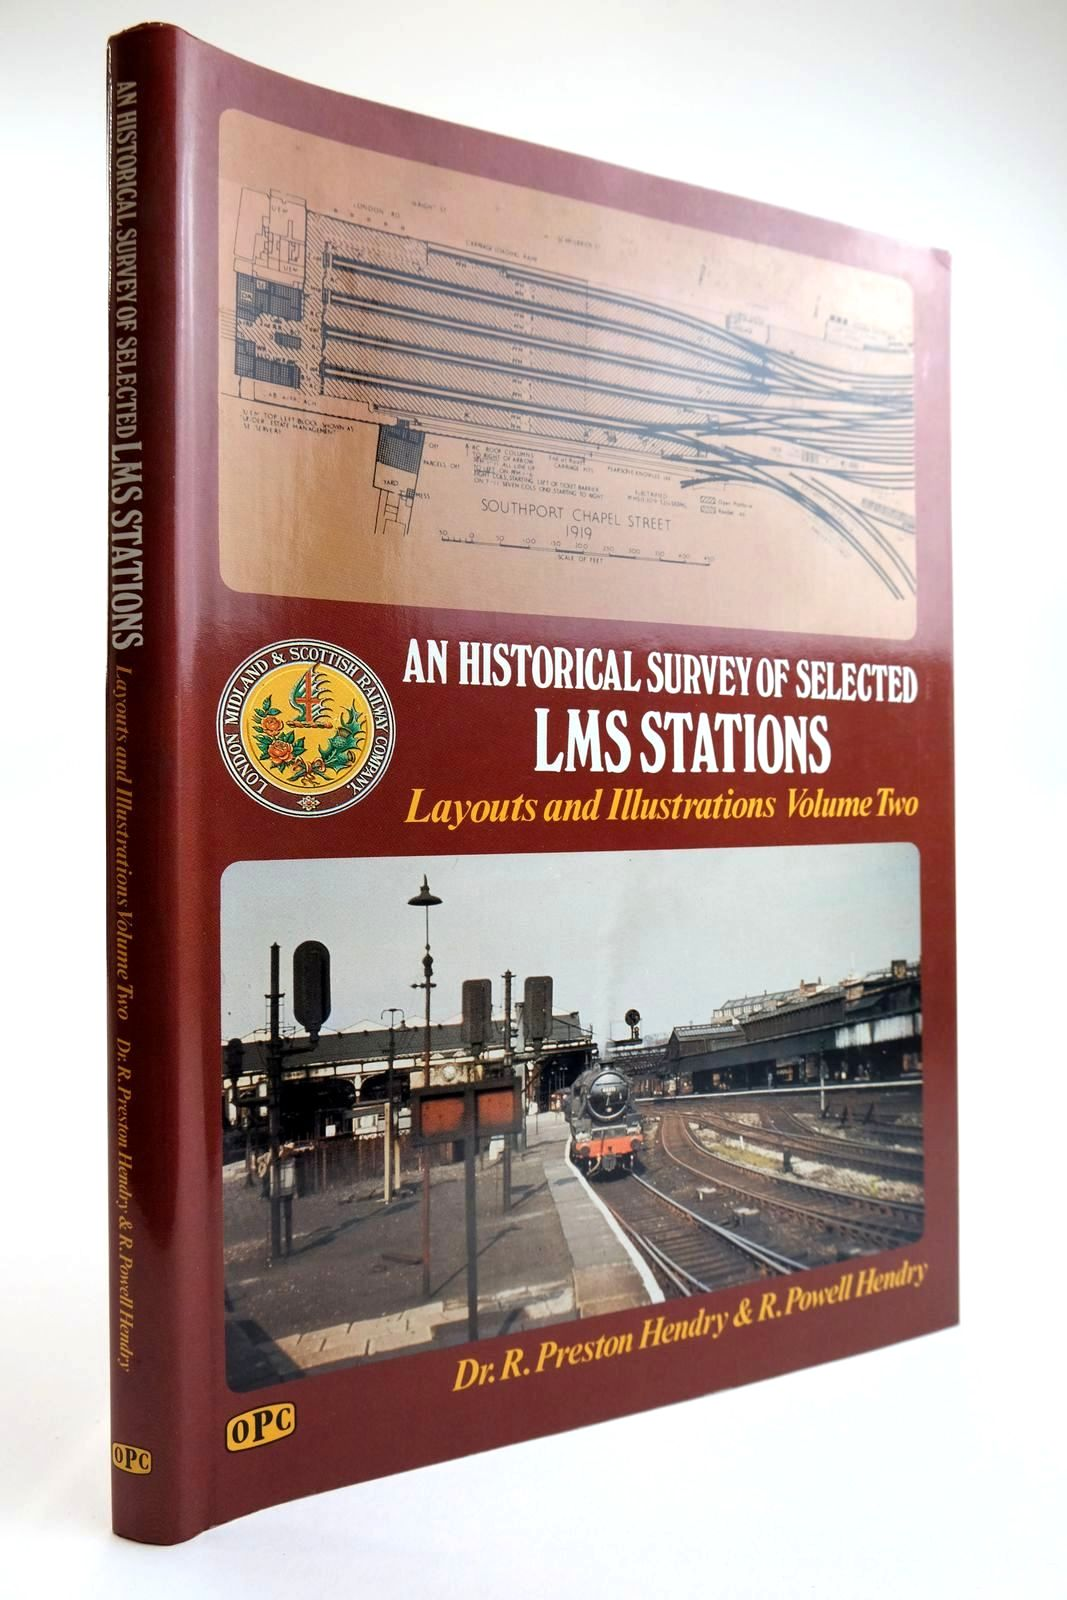 Photo of AN HISTORICAL SURVEY OF SELECTED LMS STATIONS LAYOUTS AND ILLUSTRATIONS VOLUME TWO written by Hendry, R. Preston Hendry, Robert Powell published by Oxford Publishing (STOCK CODE: 2133483)  for sale by Stella & Rose's Books